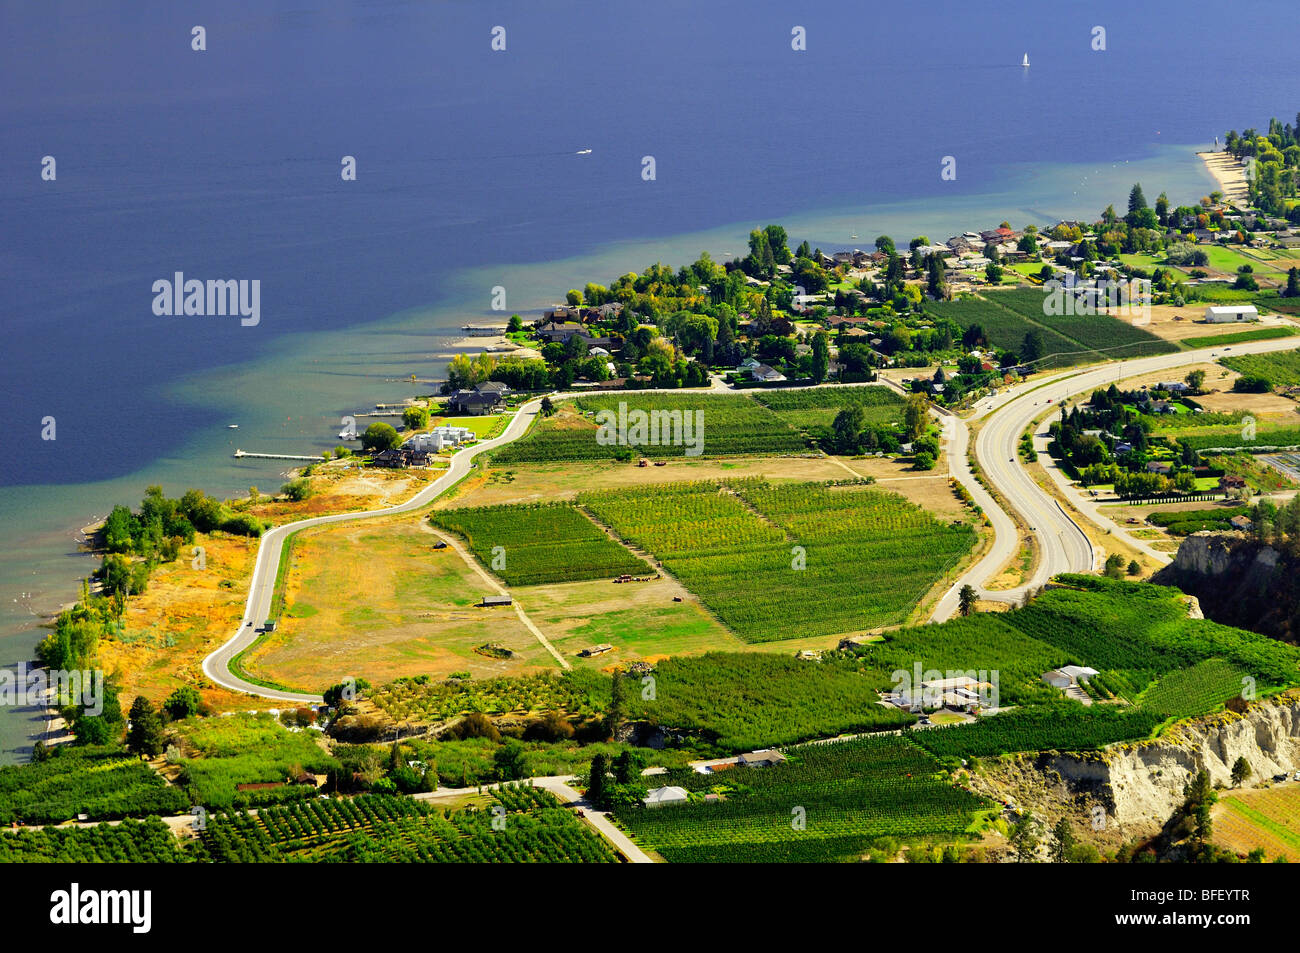 Views of Summerland from Giant's Head Park. - Stock Image